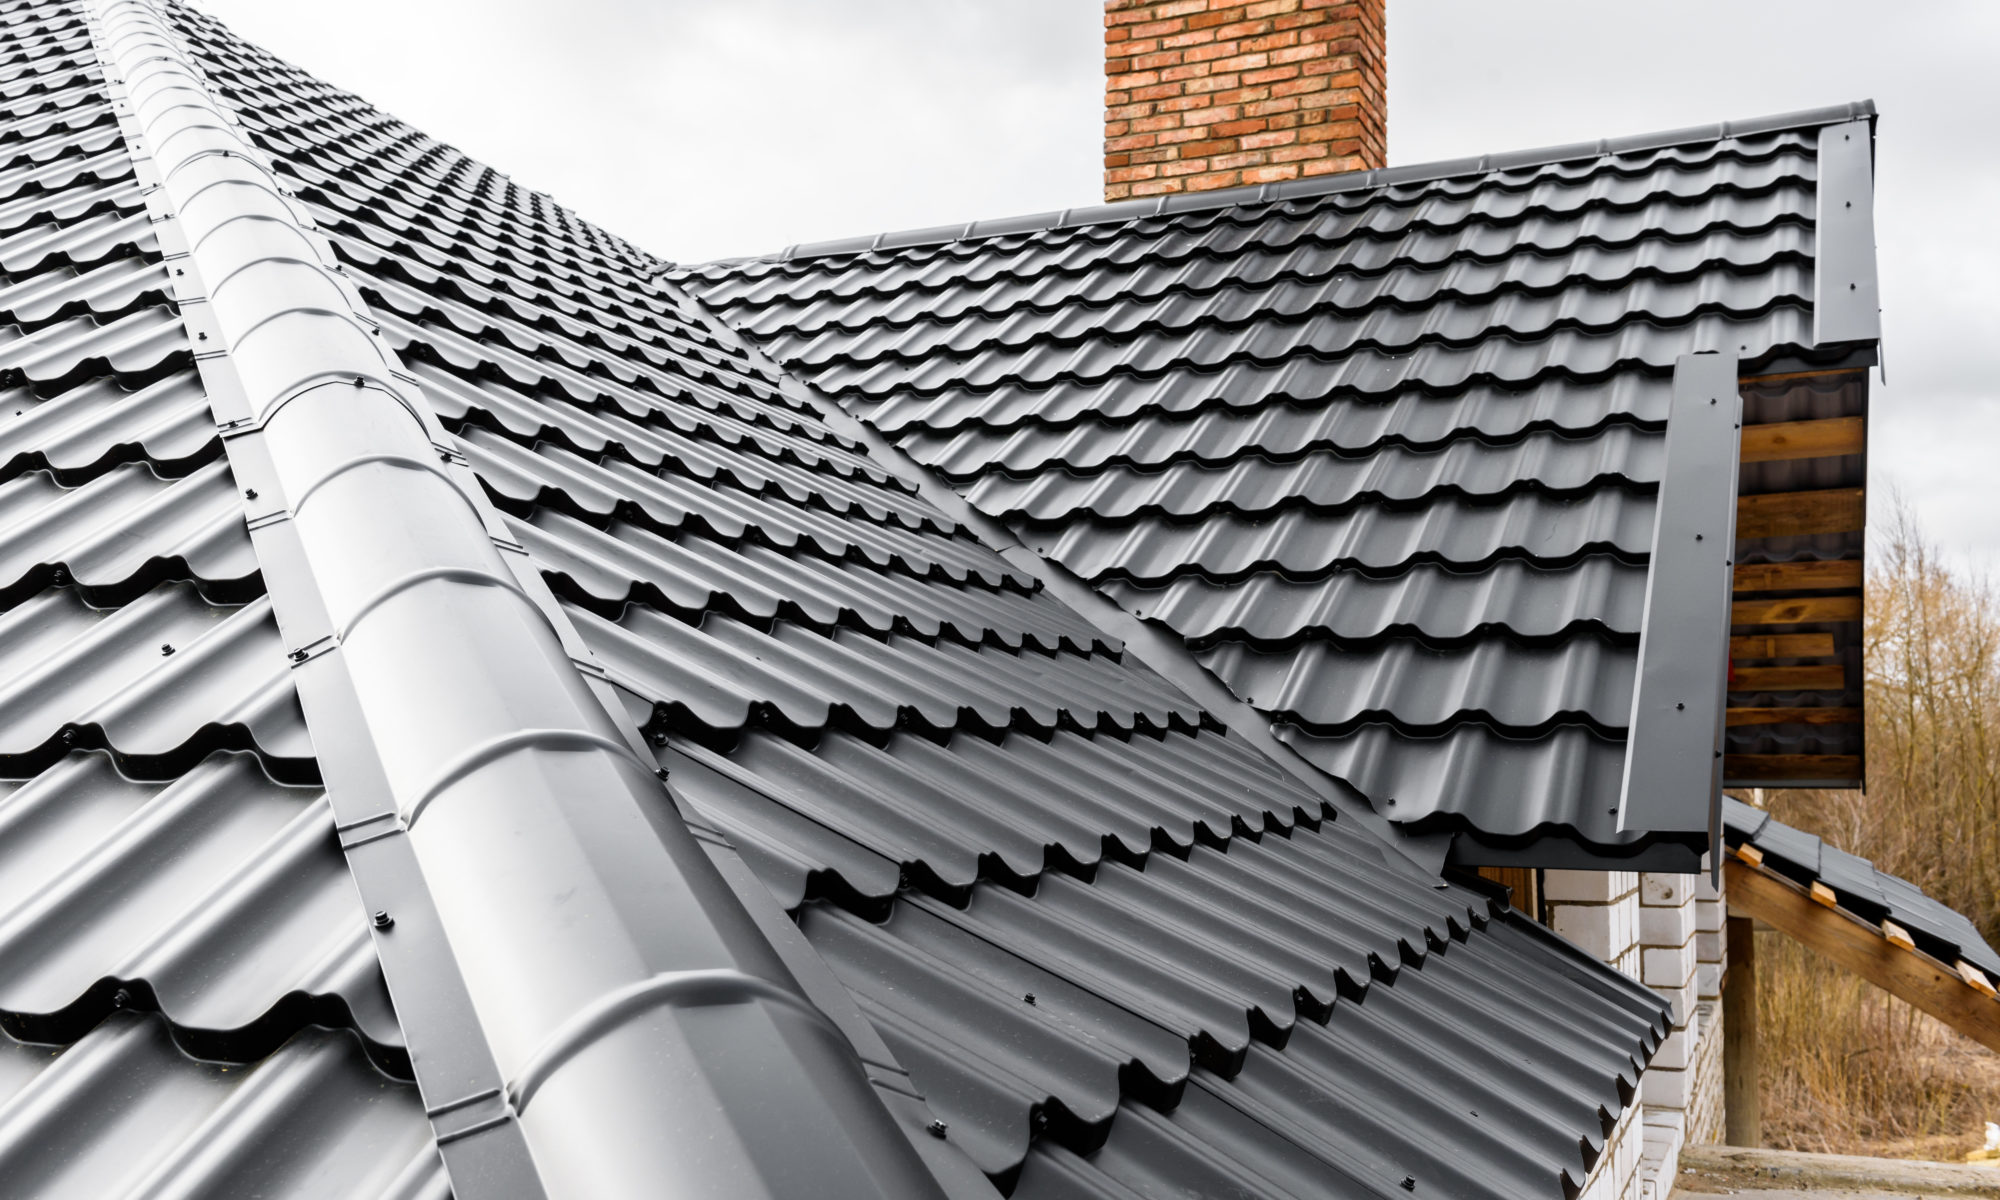 Roofing Installation Comparing Shingle Options To Metal Roofing